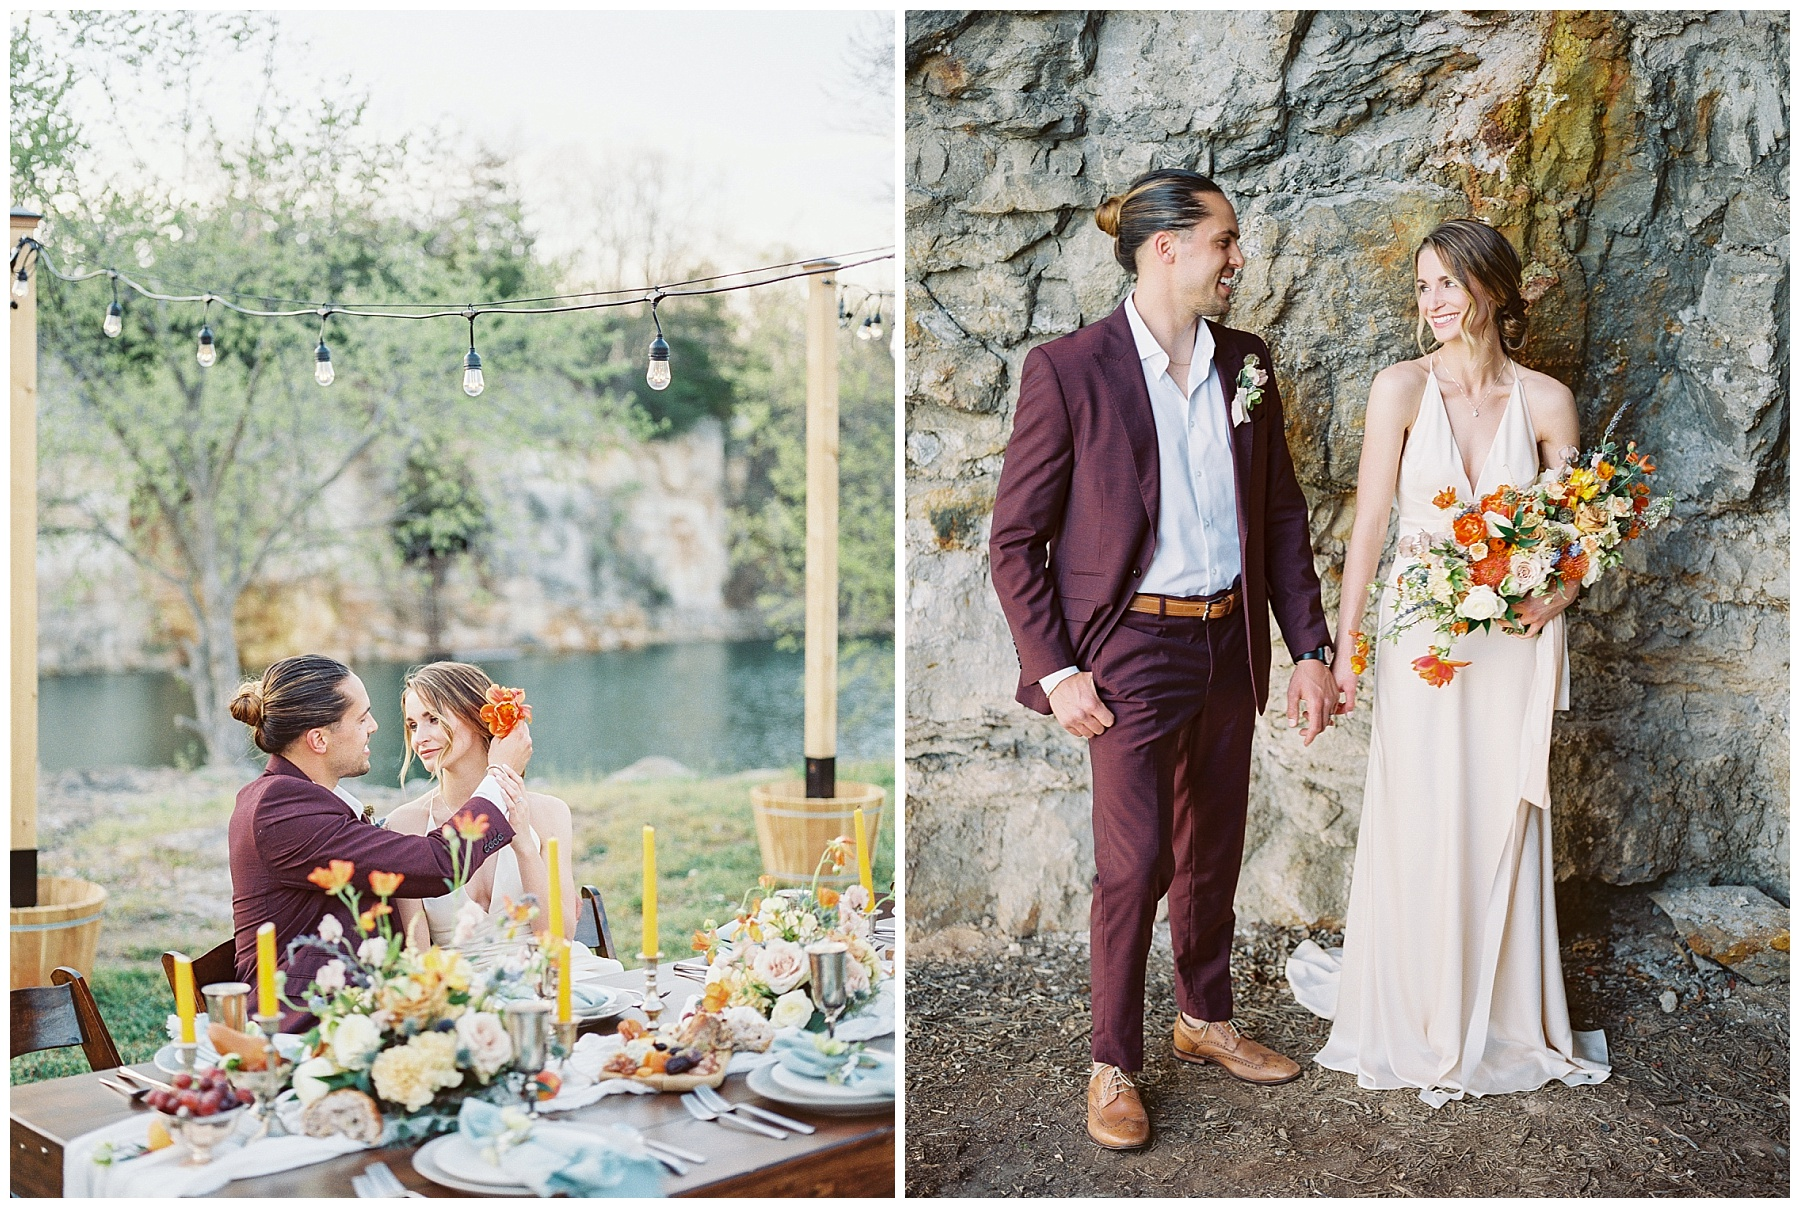 Intimate Spanish and French Inspired Destination Wedding with Lakeside Dinner Party at Dusk at Wildcliff by Kelsi Kliethermes Photography Best Missouri and Maui Wedding Photographer_0046.jpg